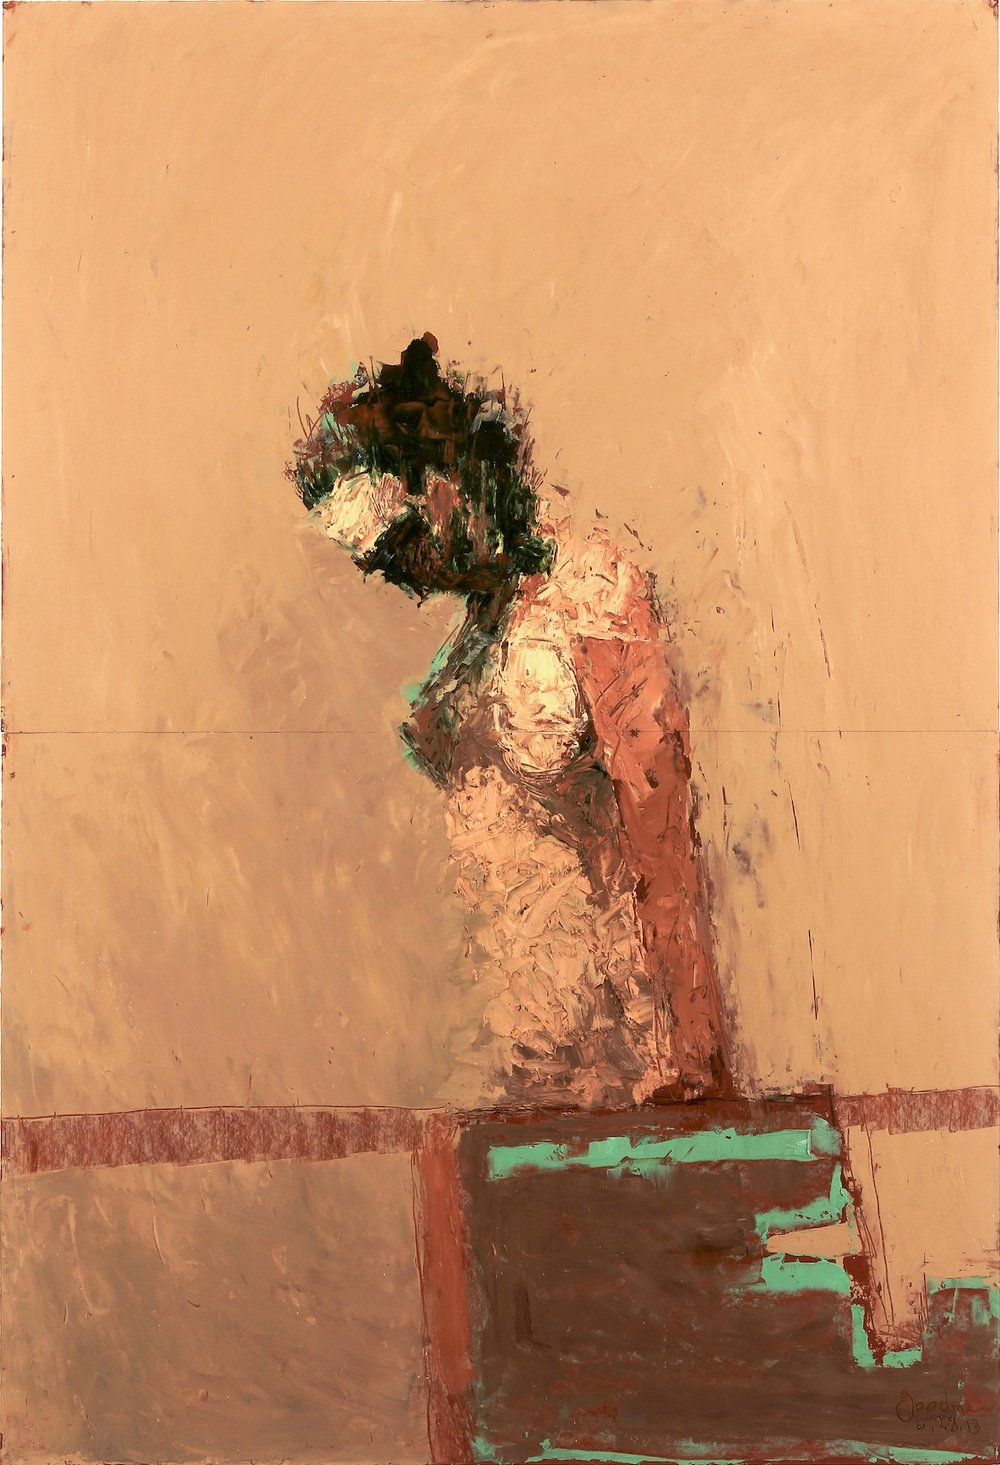 John Goodman     Bowing Figure #8,  2013 Oil & Mixed Media on Panel 44 x 30 inches      For More Information     Artist Biography, Exhibitions & Collections